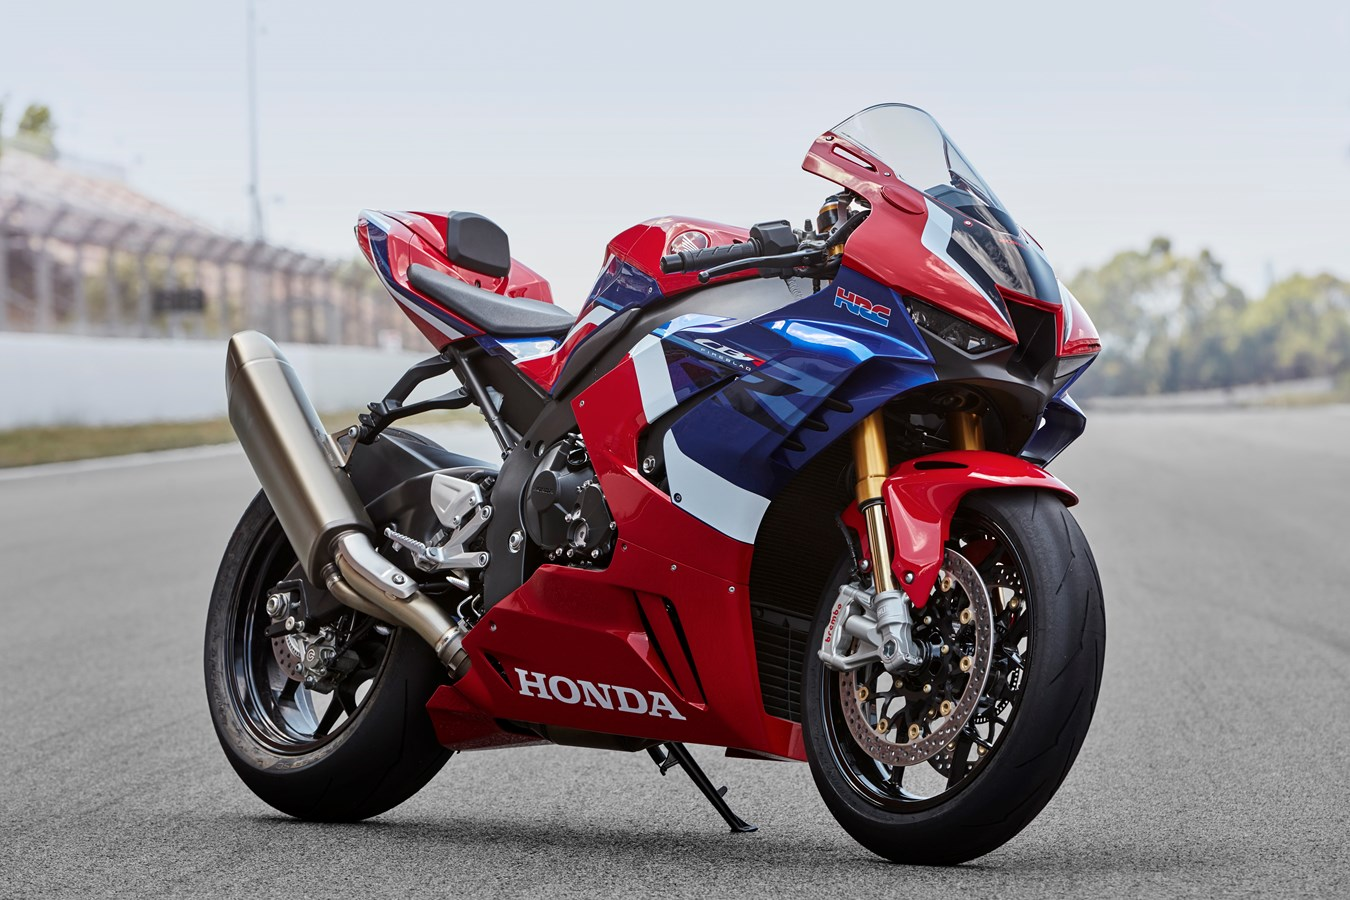 THE ALL NEW CBR1000RR-R SP 2020